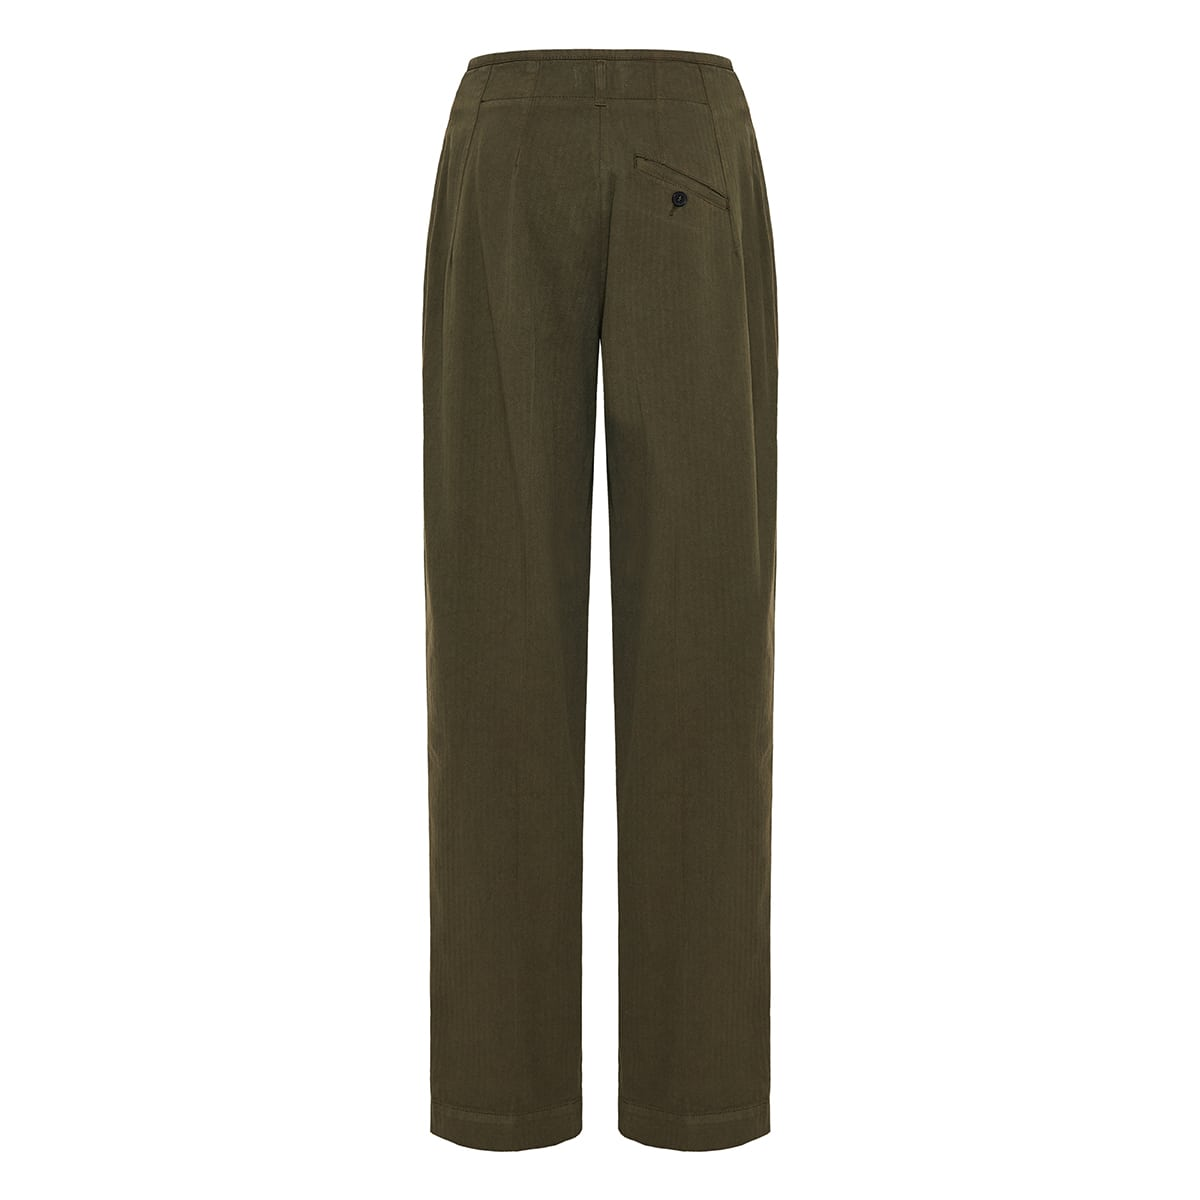 High-waist tapered cotton trousers